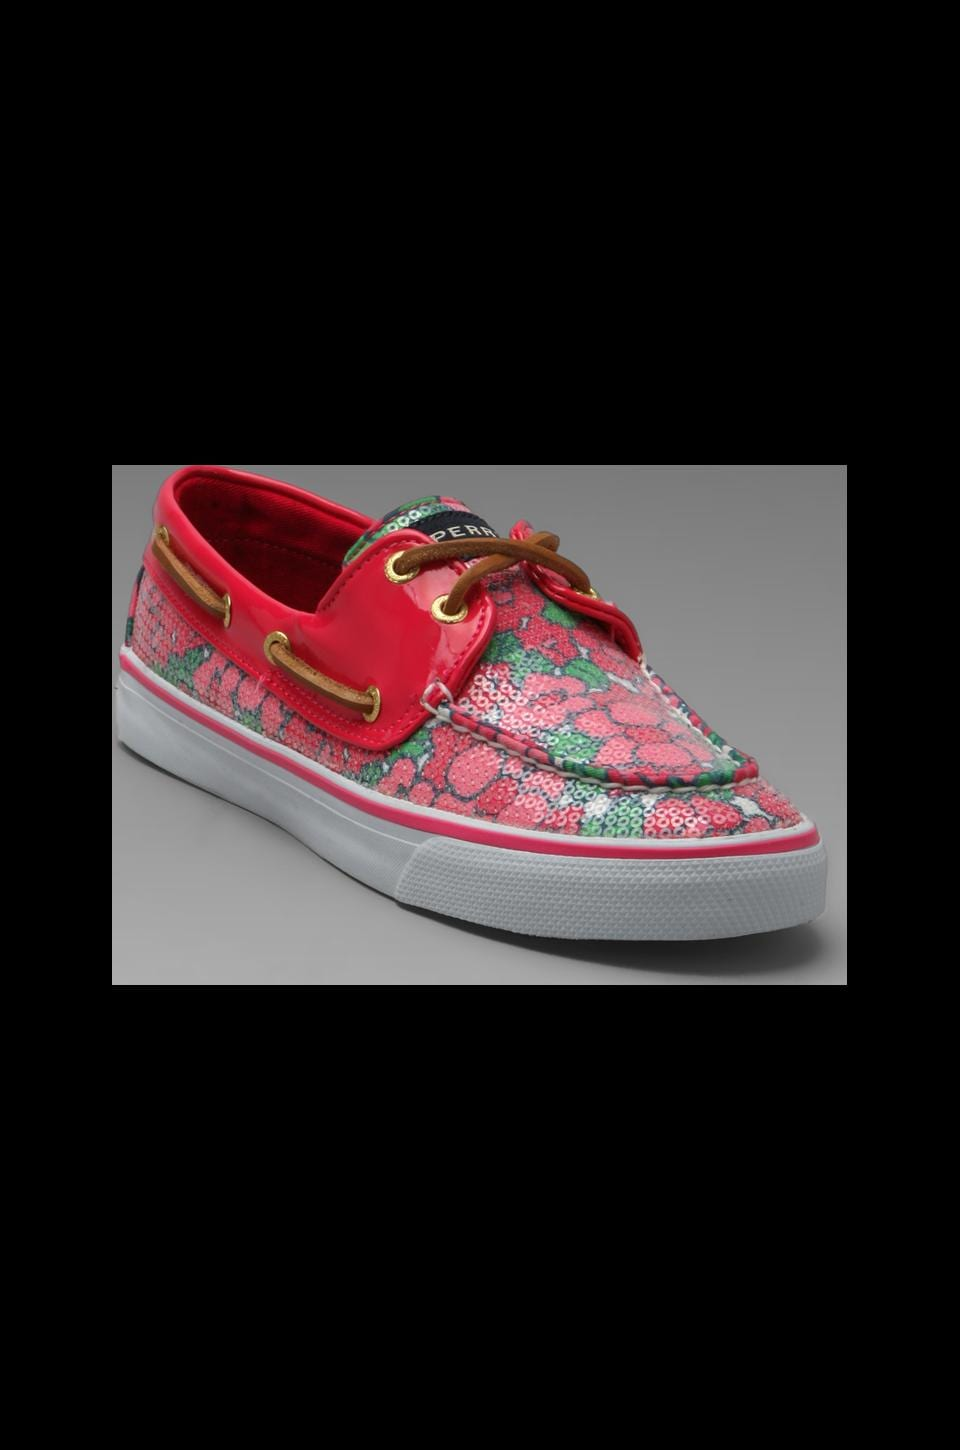 Sperry Top-Sider Bahama 2-Eye in Berry Floral